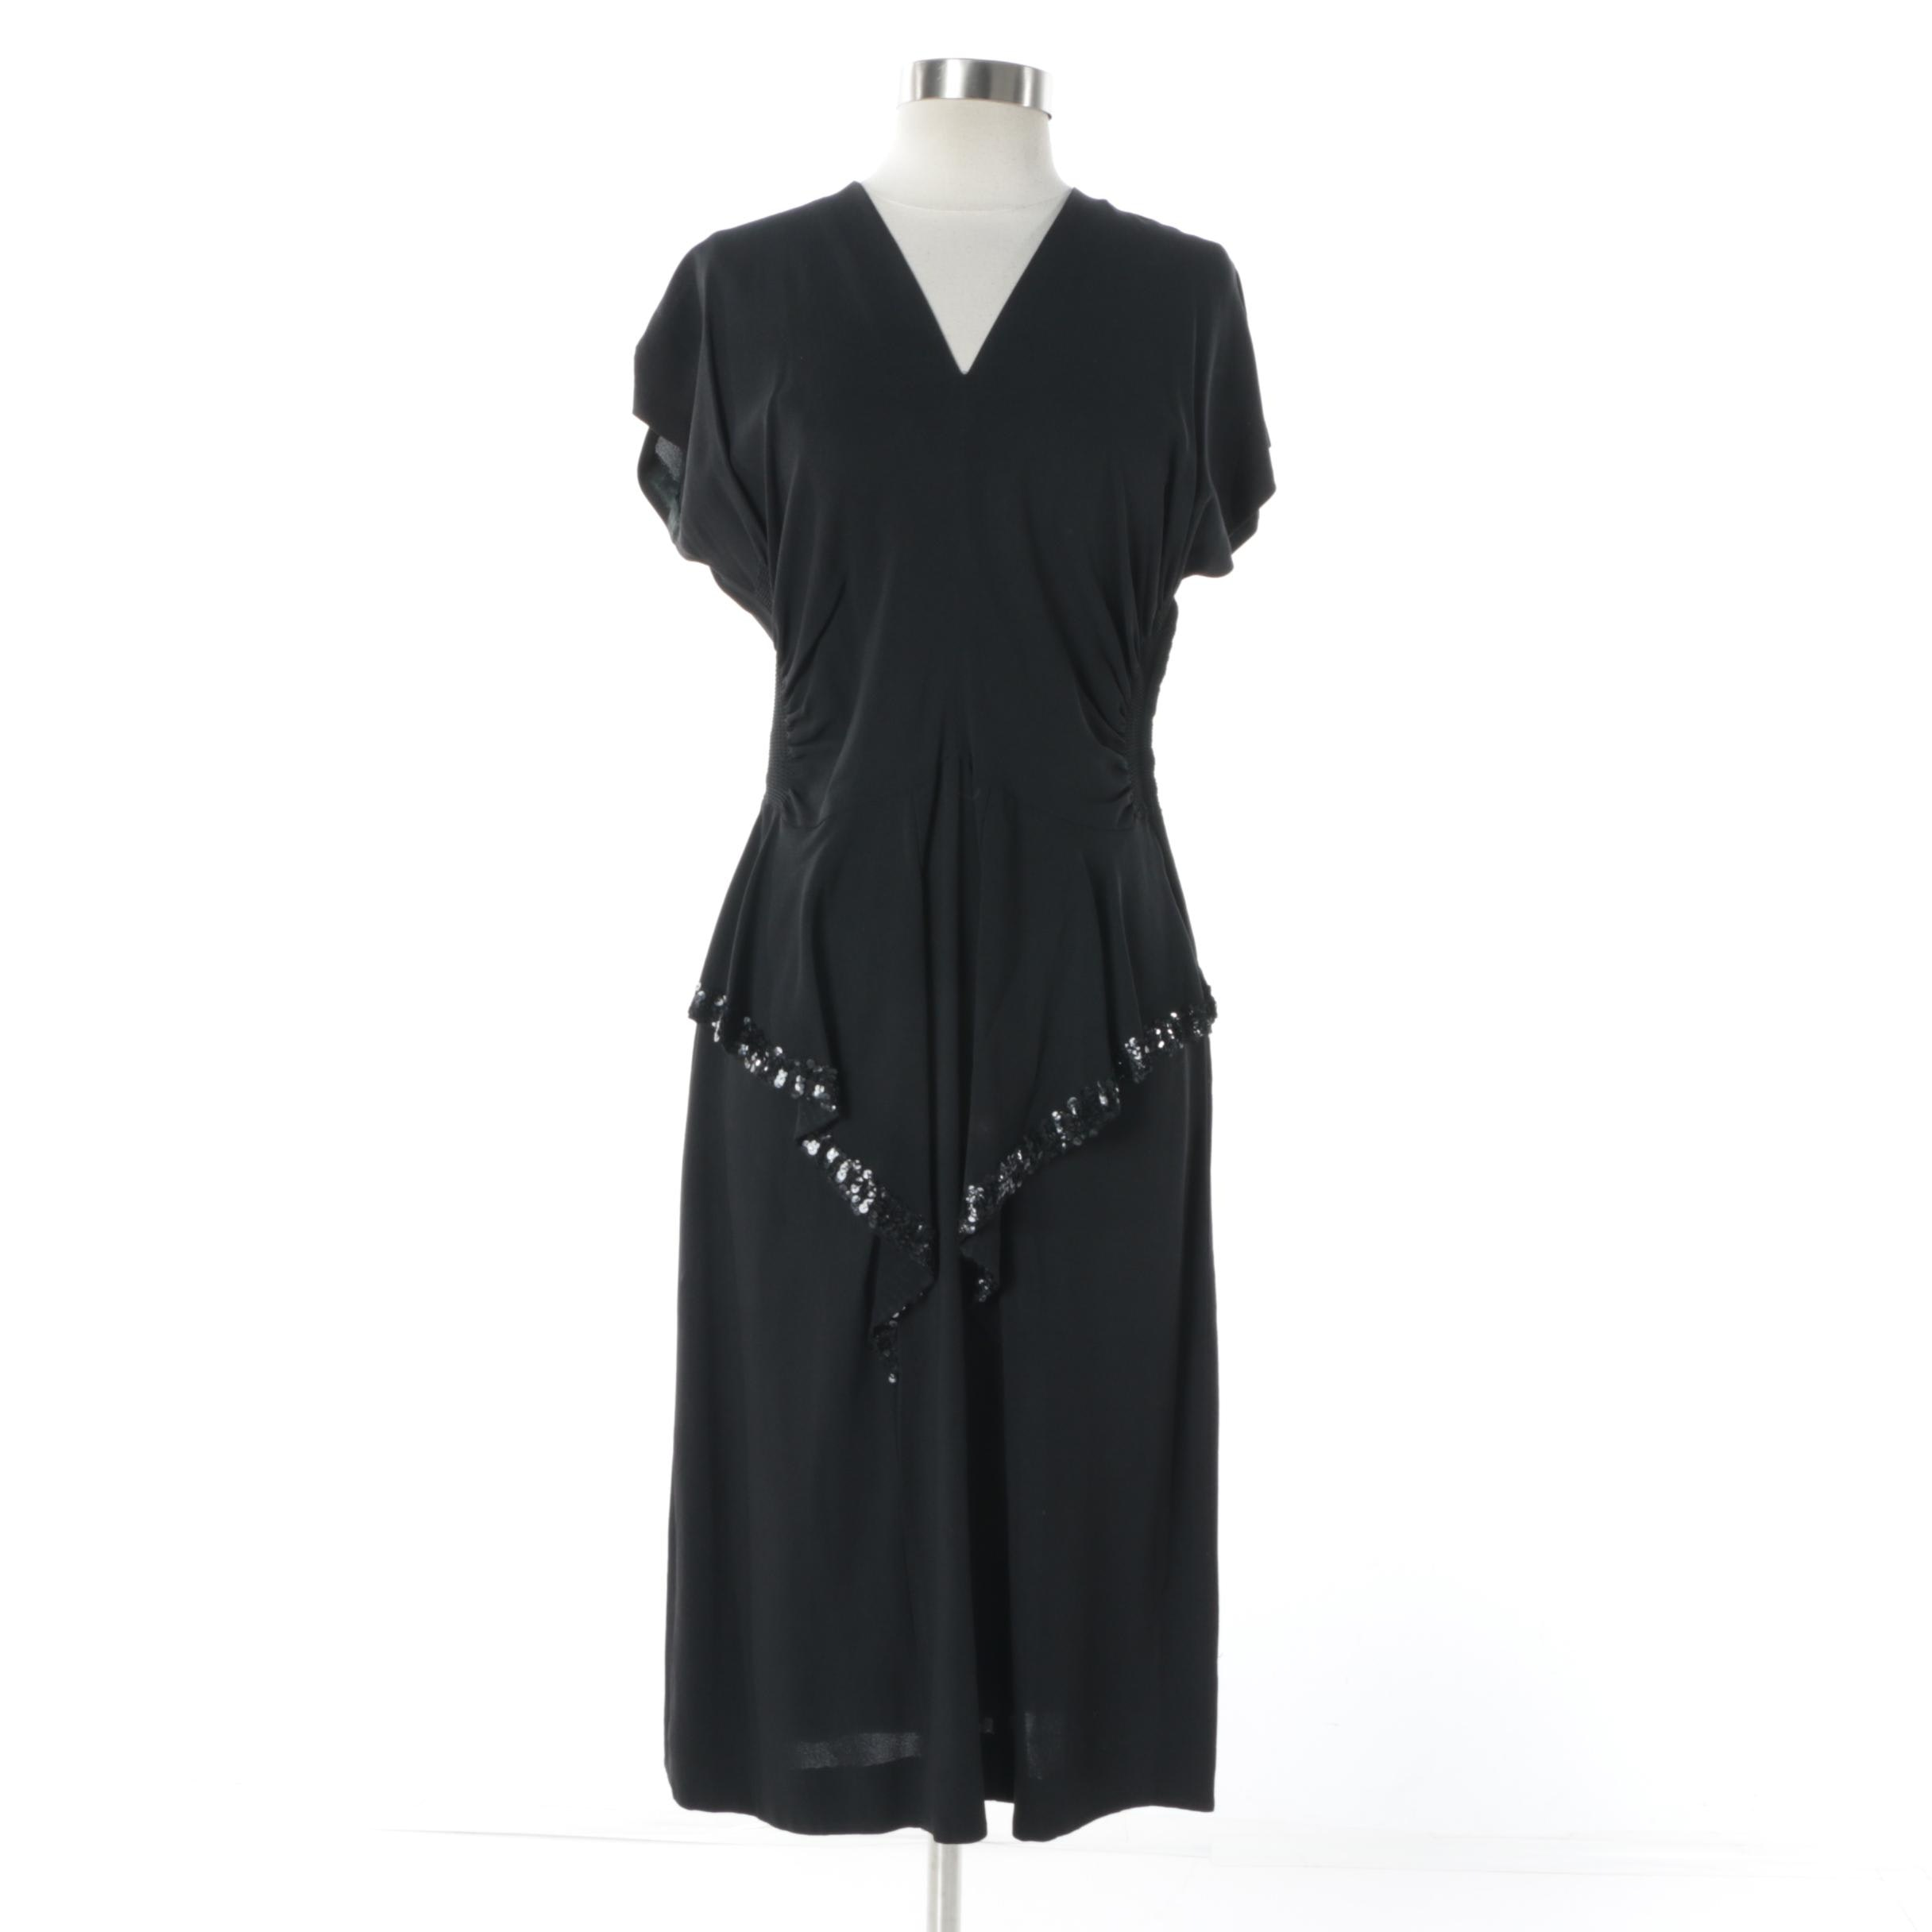 Circa 1940s Black Silk Dress with Ruched Sides and Sequin Detail